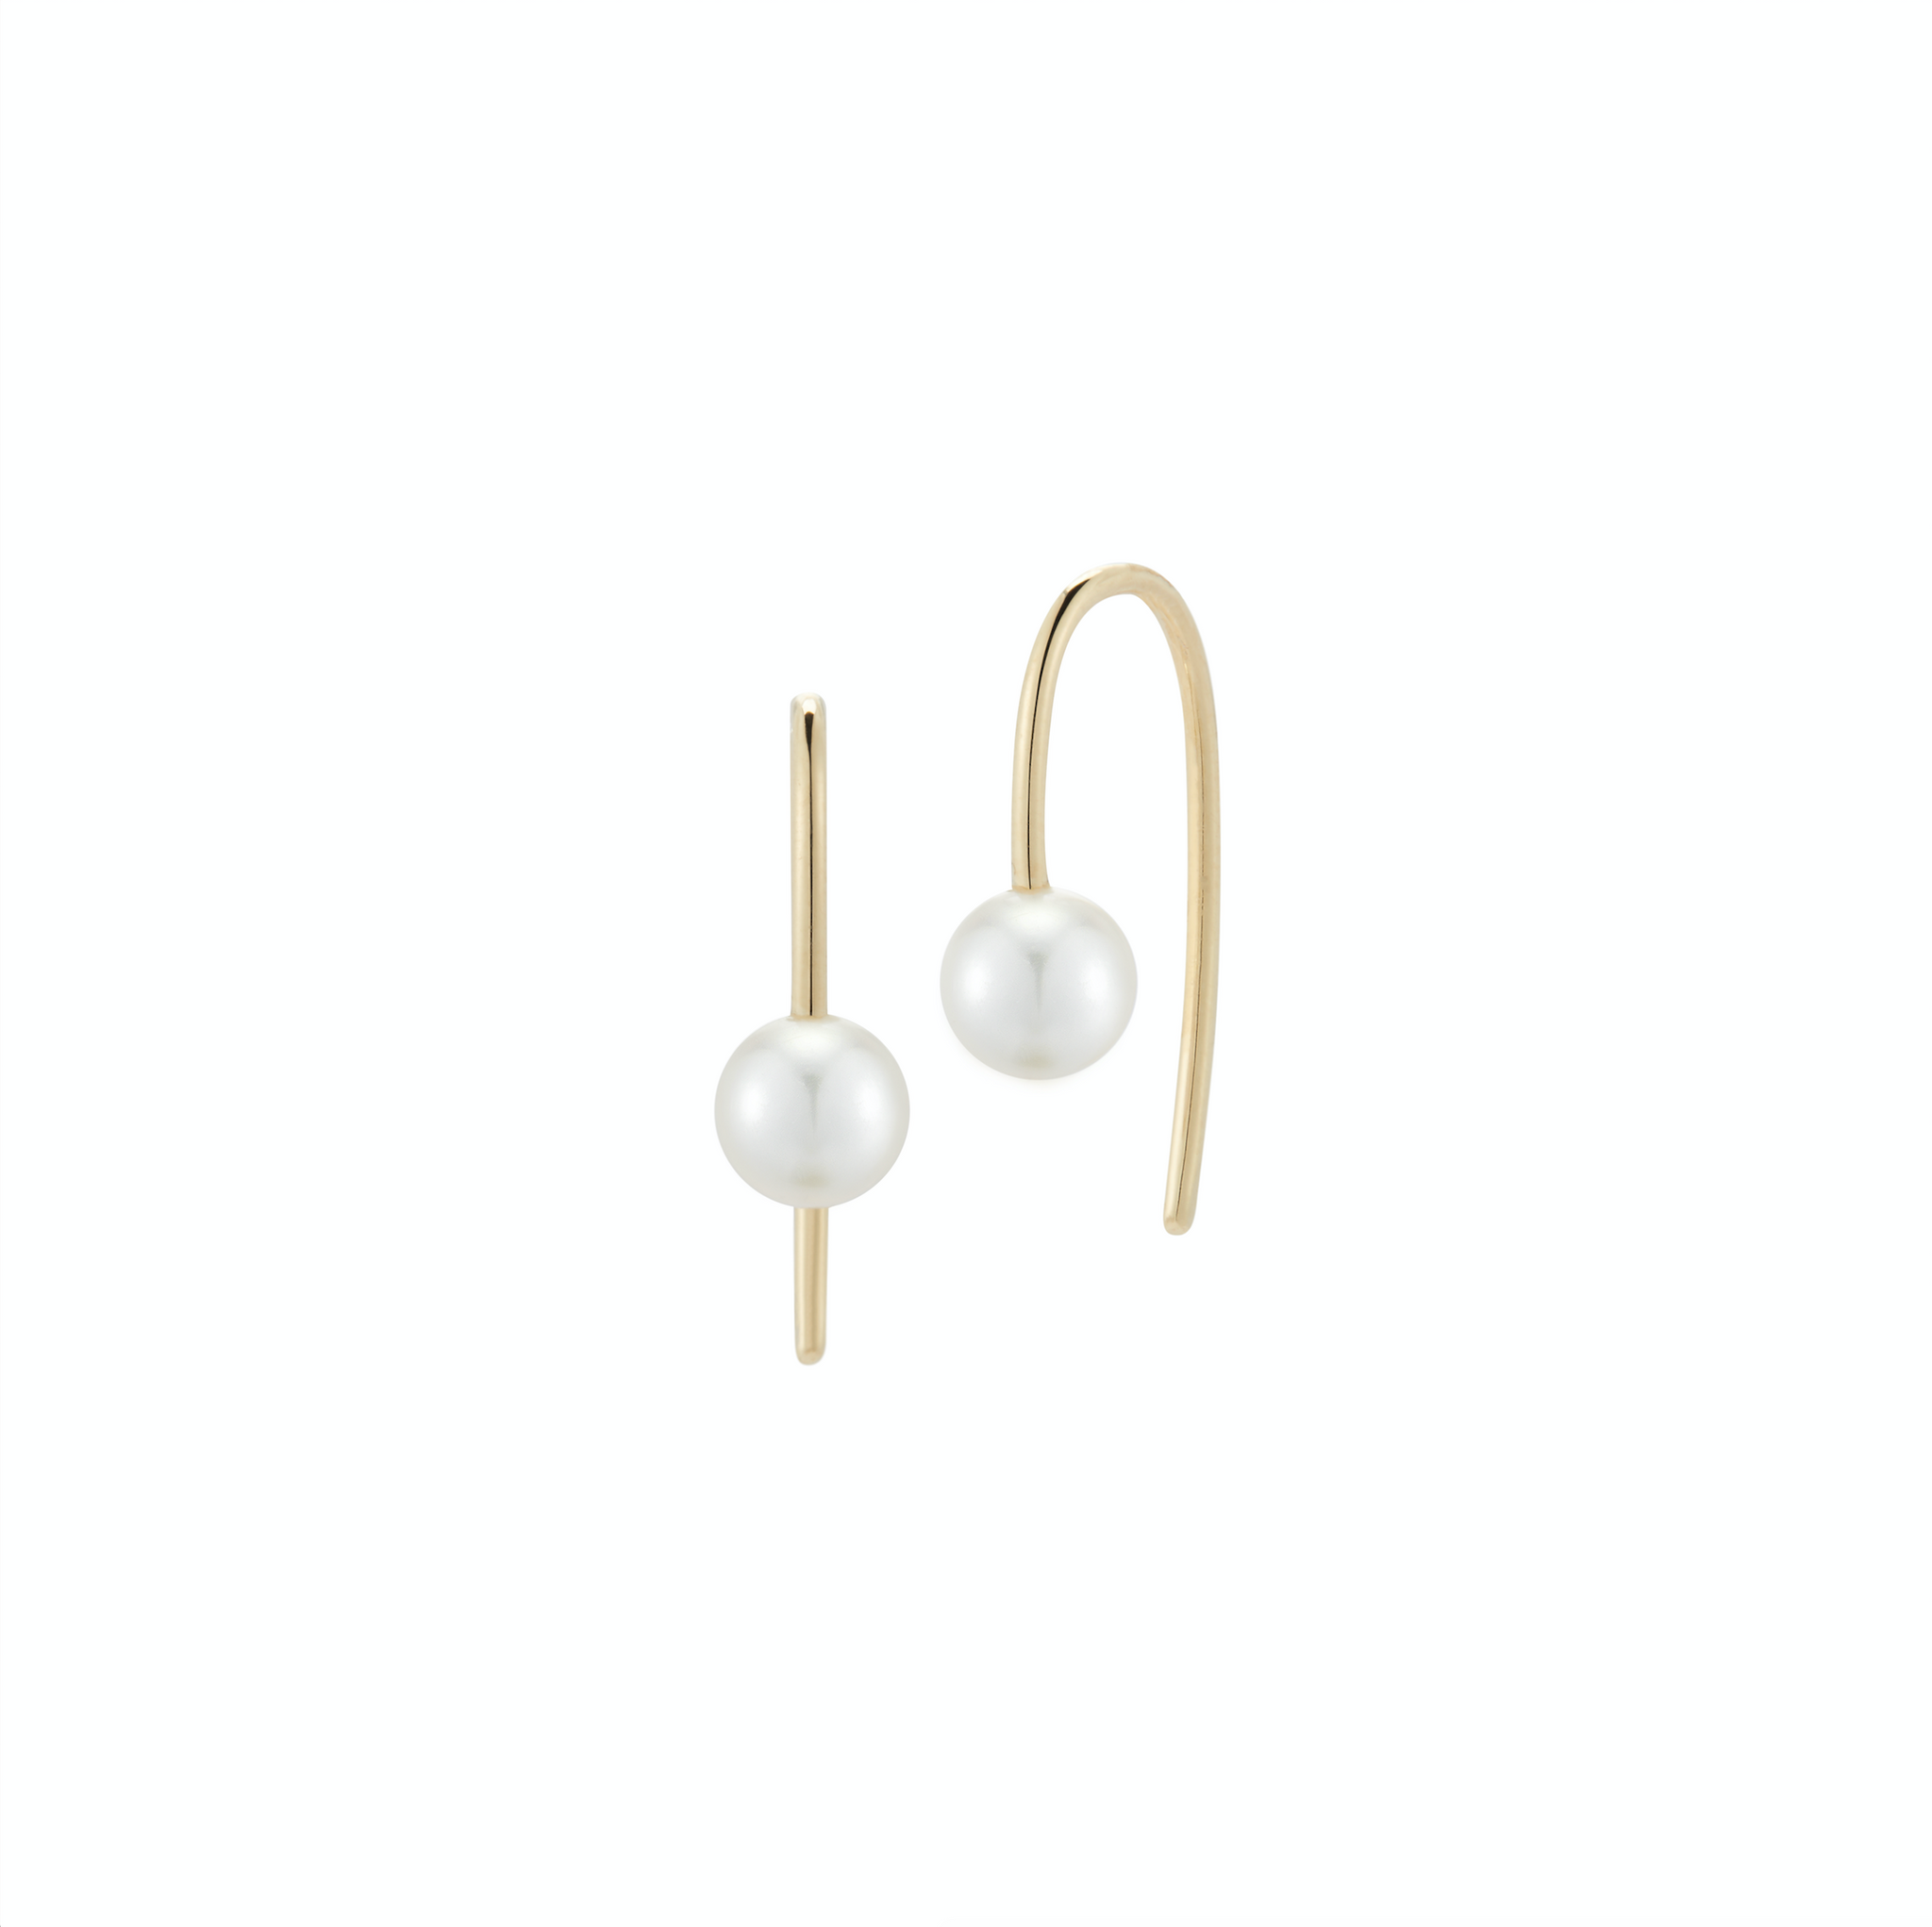 Finn 18k Pair of Akoya Pearl Hook Earrings